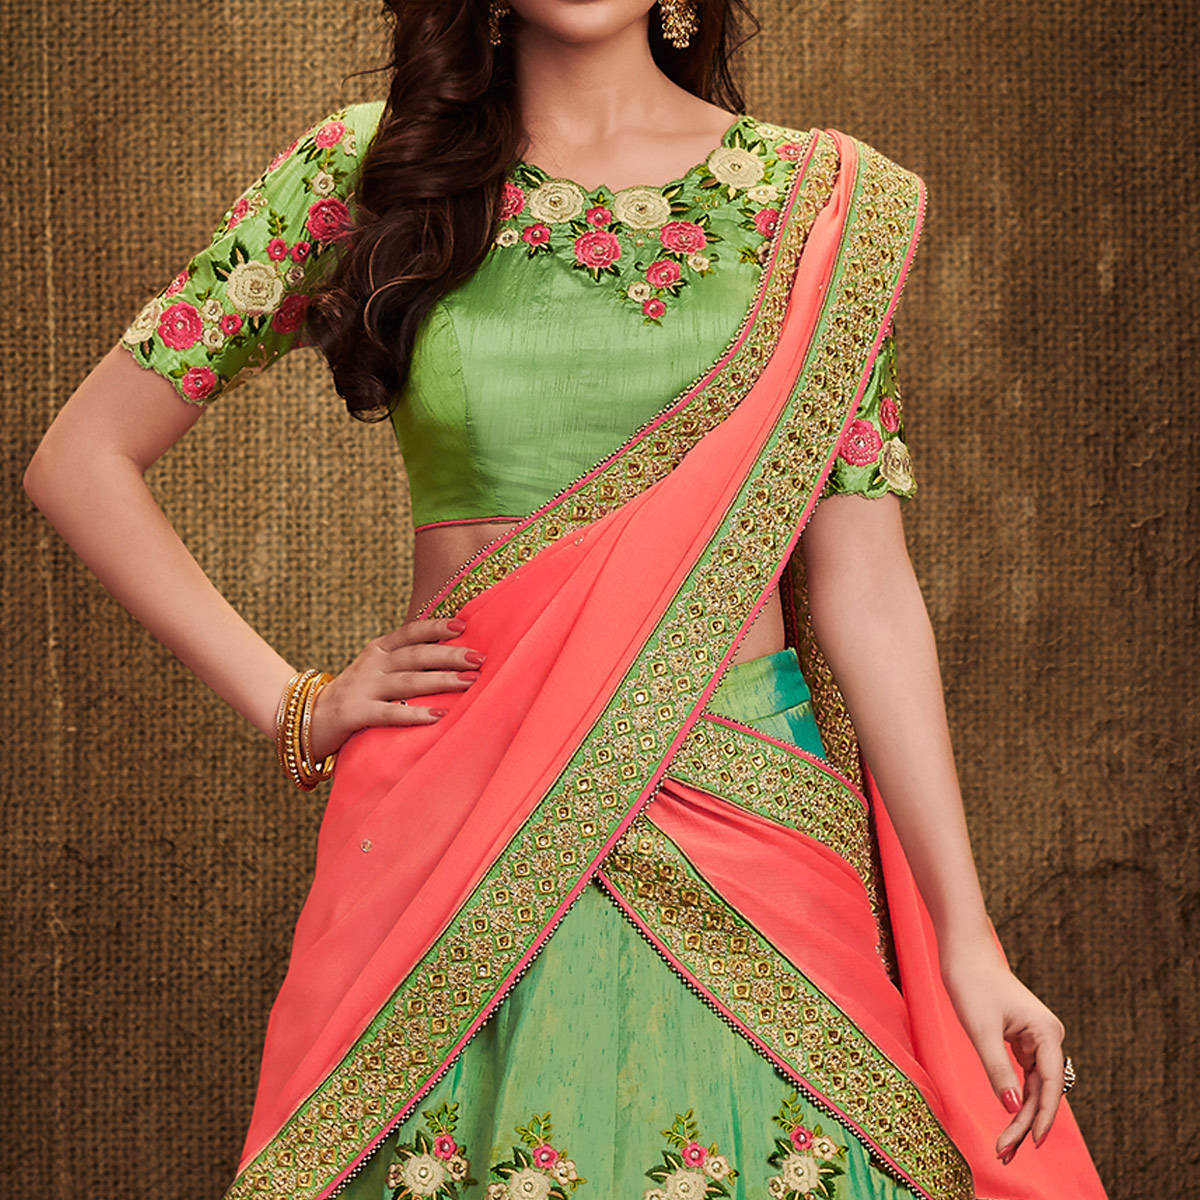 NAKKASHI - Jazzy Green Colored Party Wear Embroidered Handloom Raw Silk Lehenga Choli